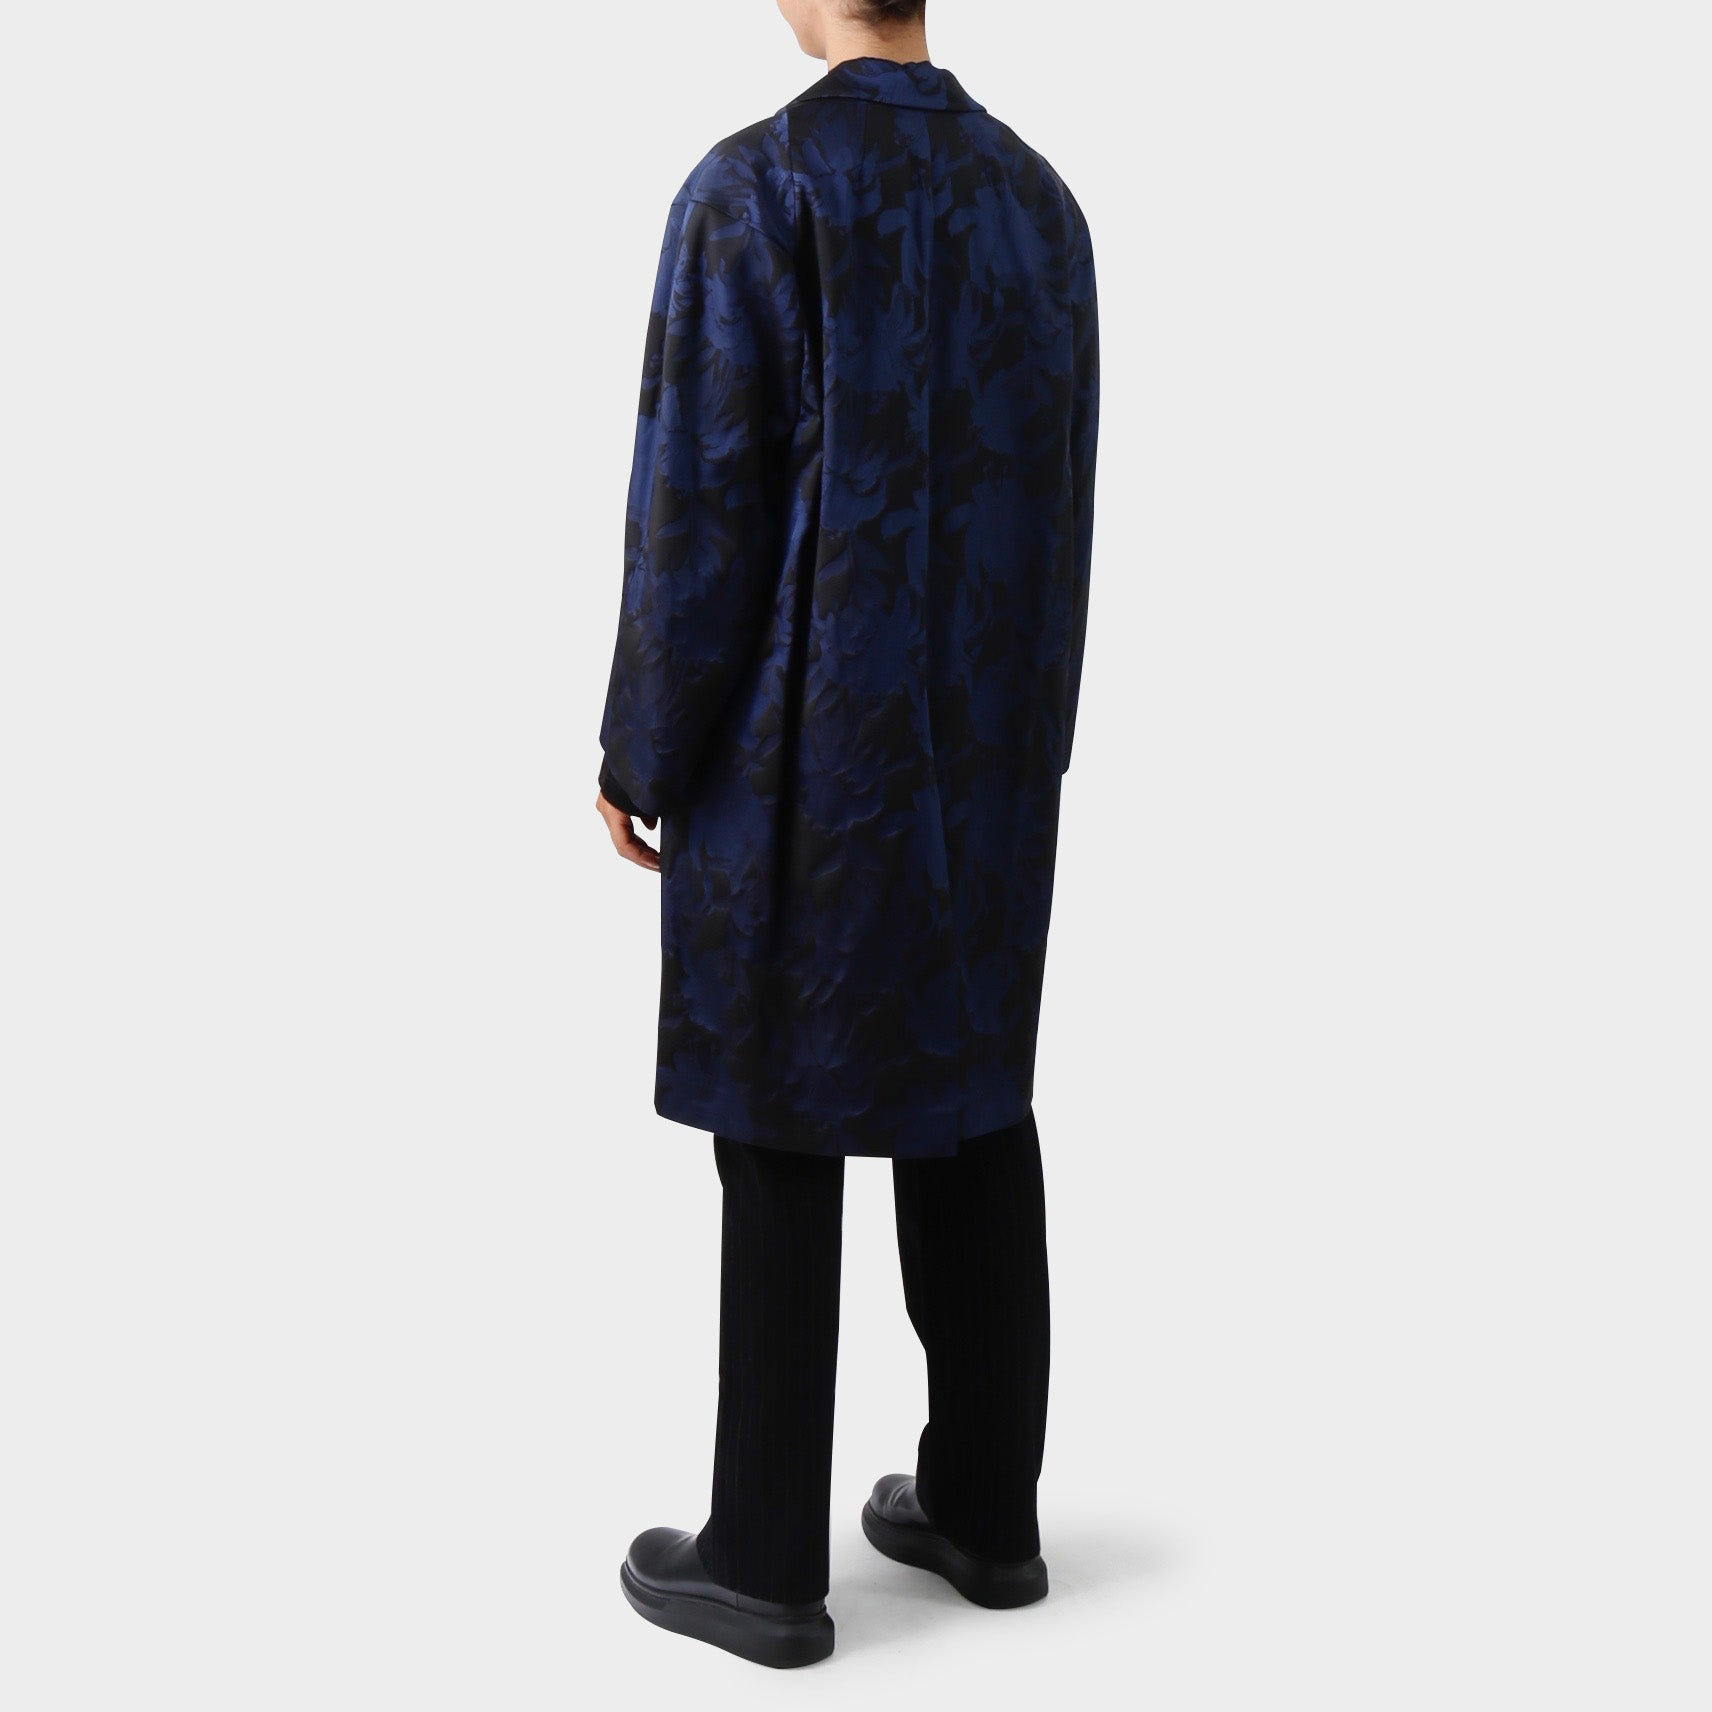 Dries van Noten Navy Resnick Coat